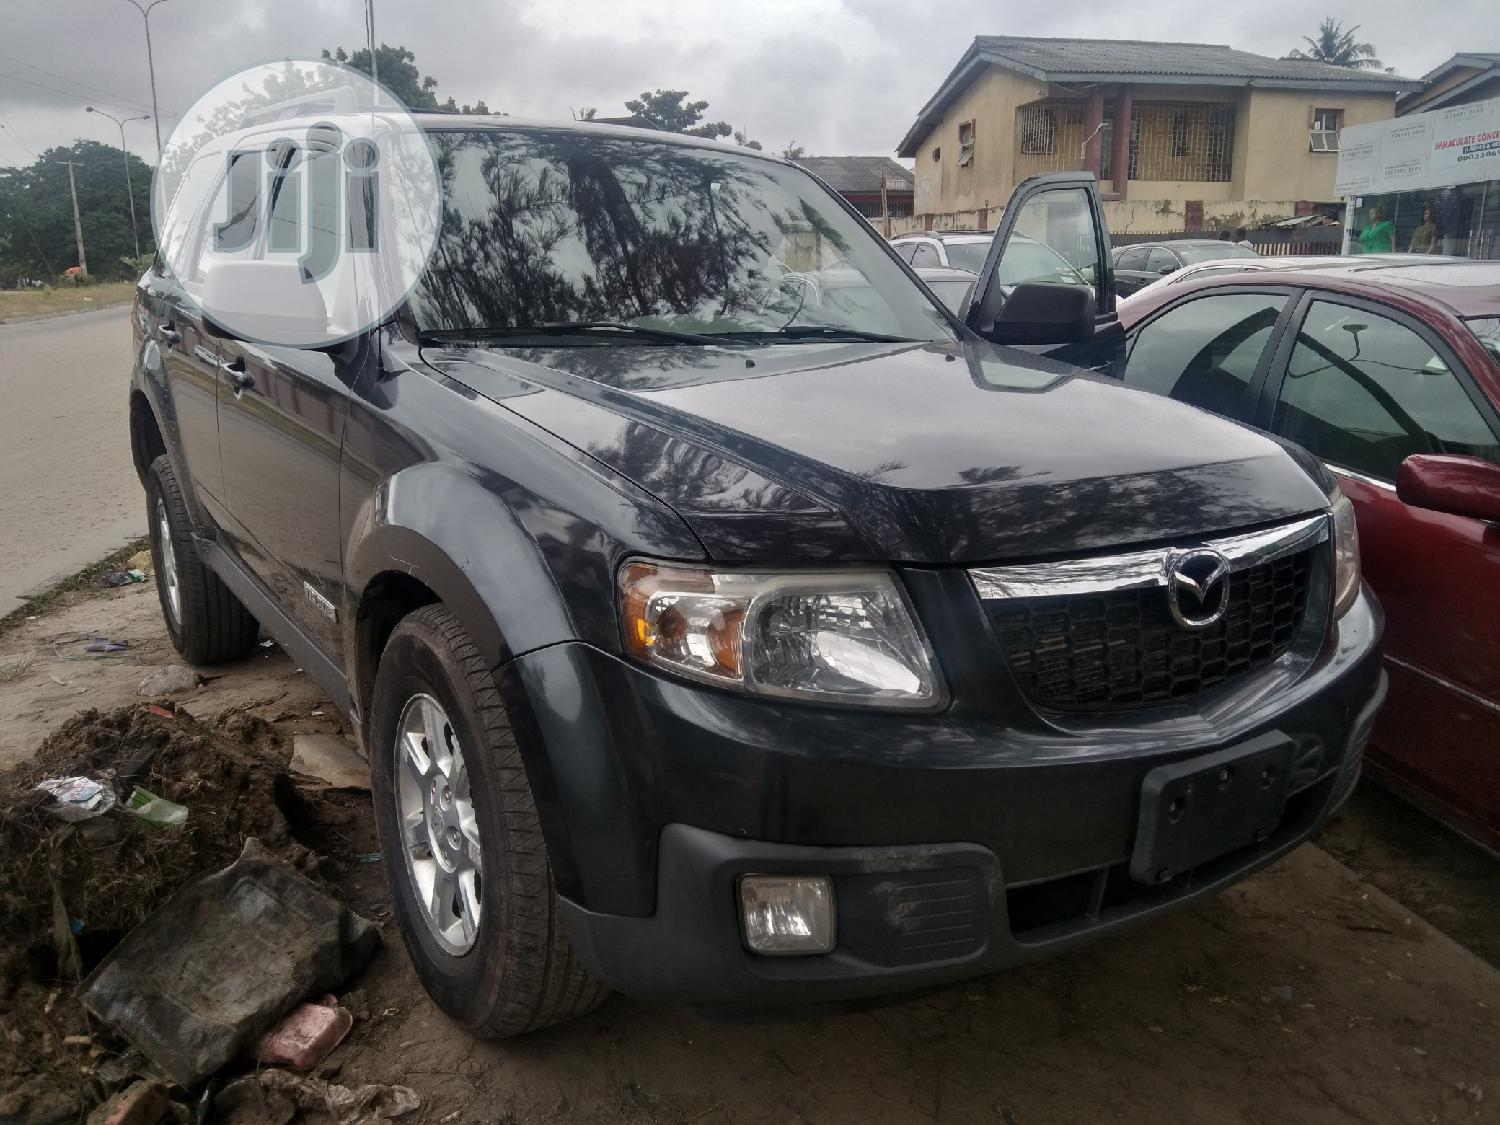 Archive Mazda Tribute 2008 3 0 4x4 Exclusive Gray In Amuwo Odofin Cars Hector Automobile Jiji Ng For Sale In Amuwo Odofin Buy Cars From Hector Automobile On Jiji Ng